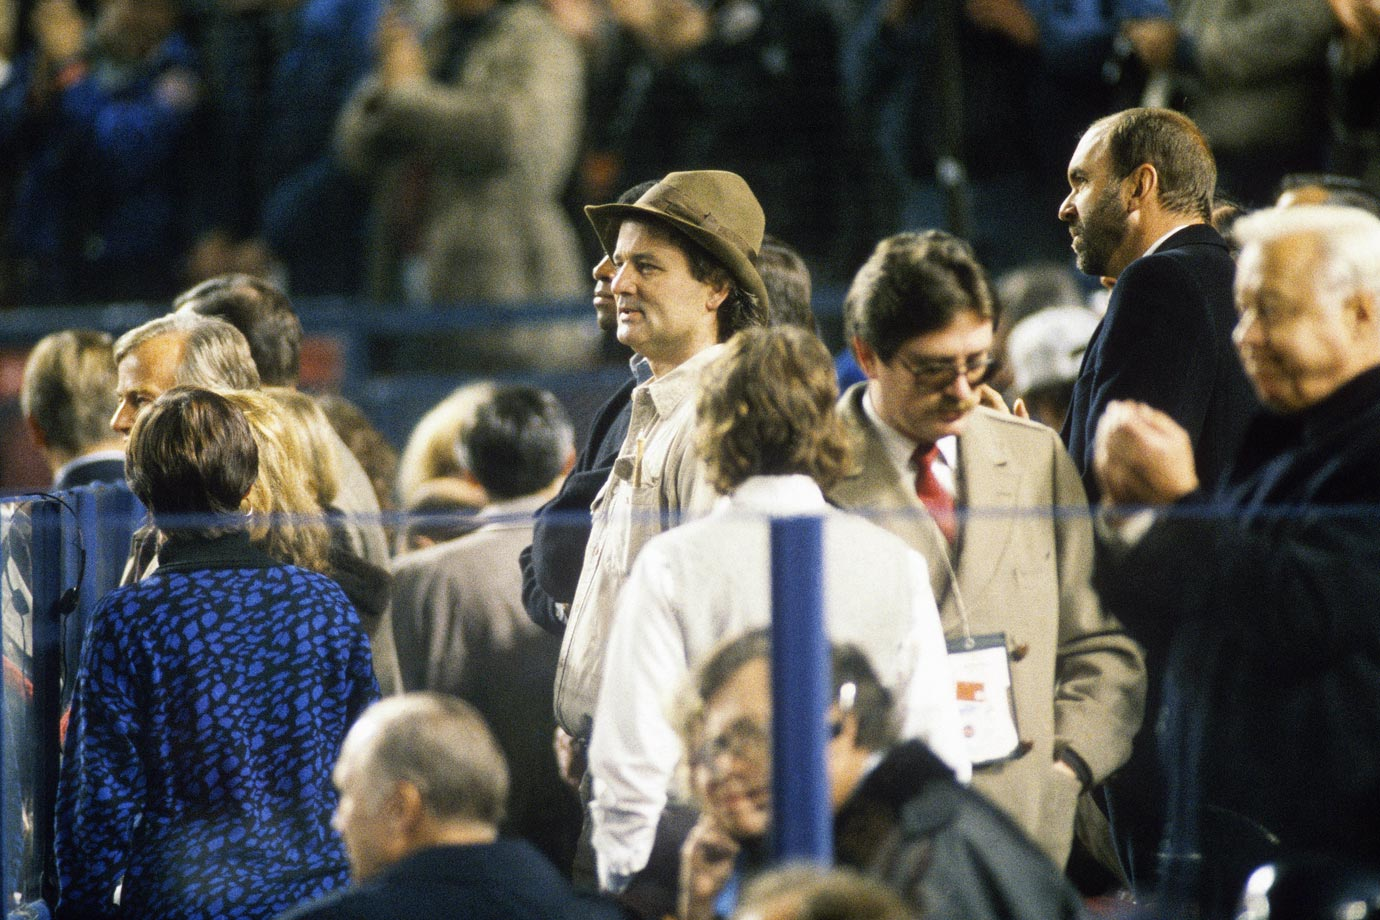 Bill Murray takes in the festivities during the 1986 World Series at Shea Stadium in Flushing, N.Y.